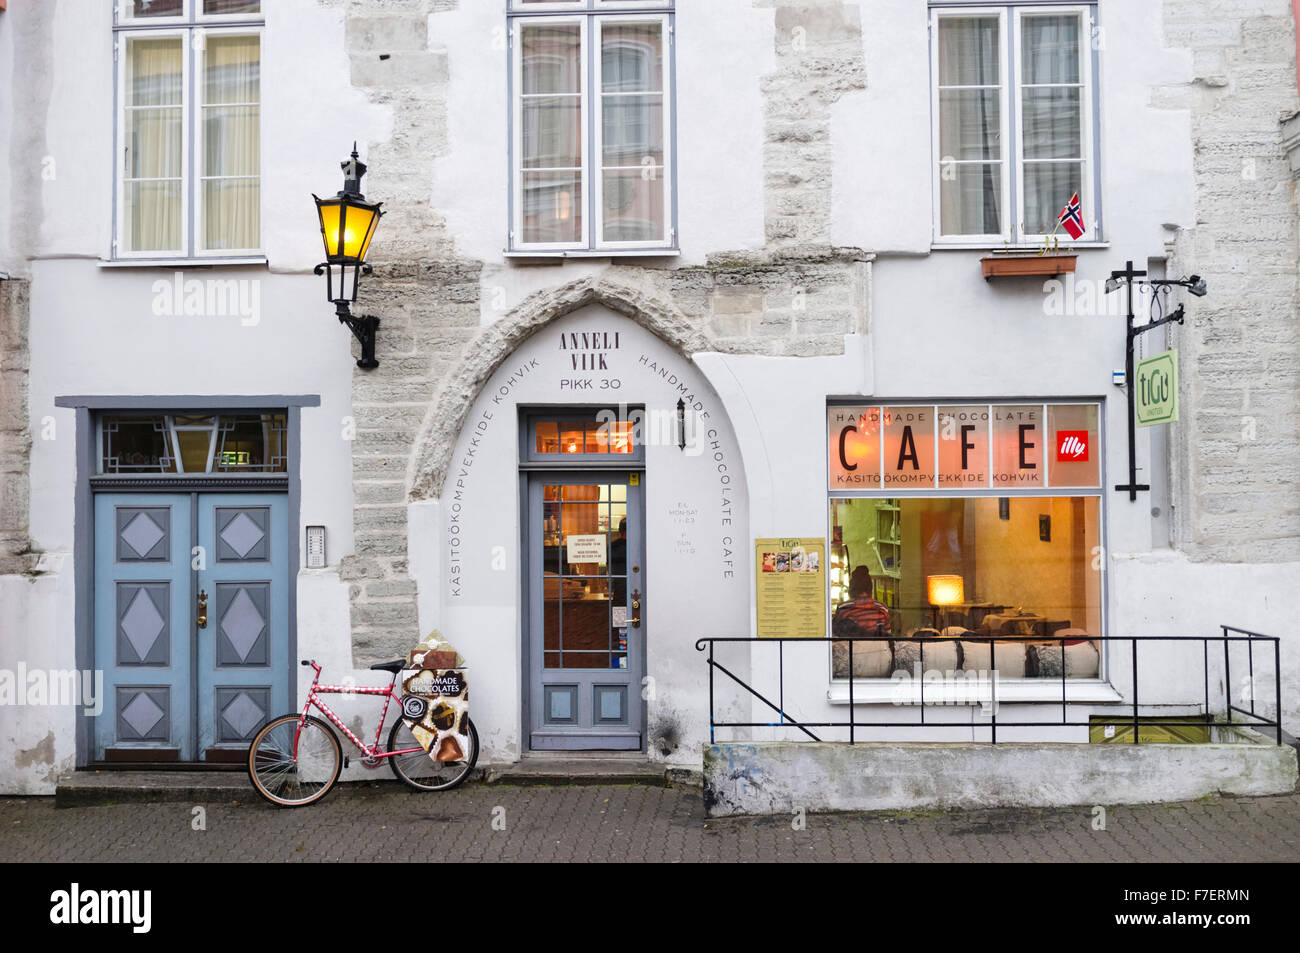 Anneli Viik Chocolate Cafe in the Old Town of Tallinn, Estonia - Stock Image